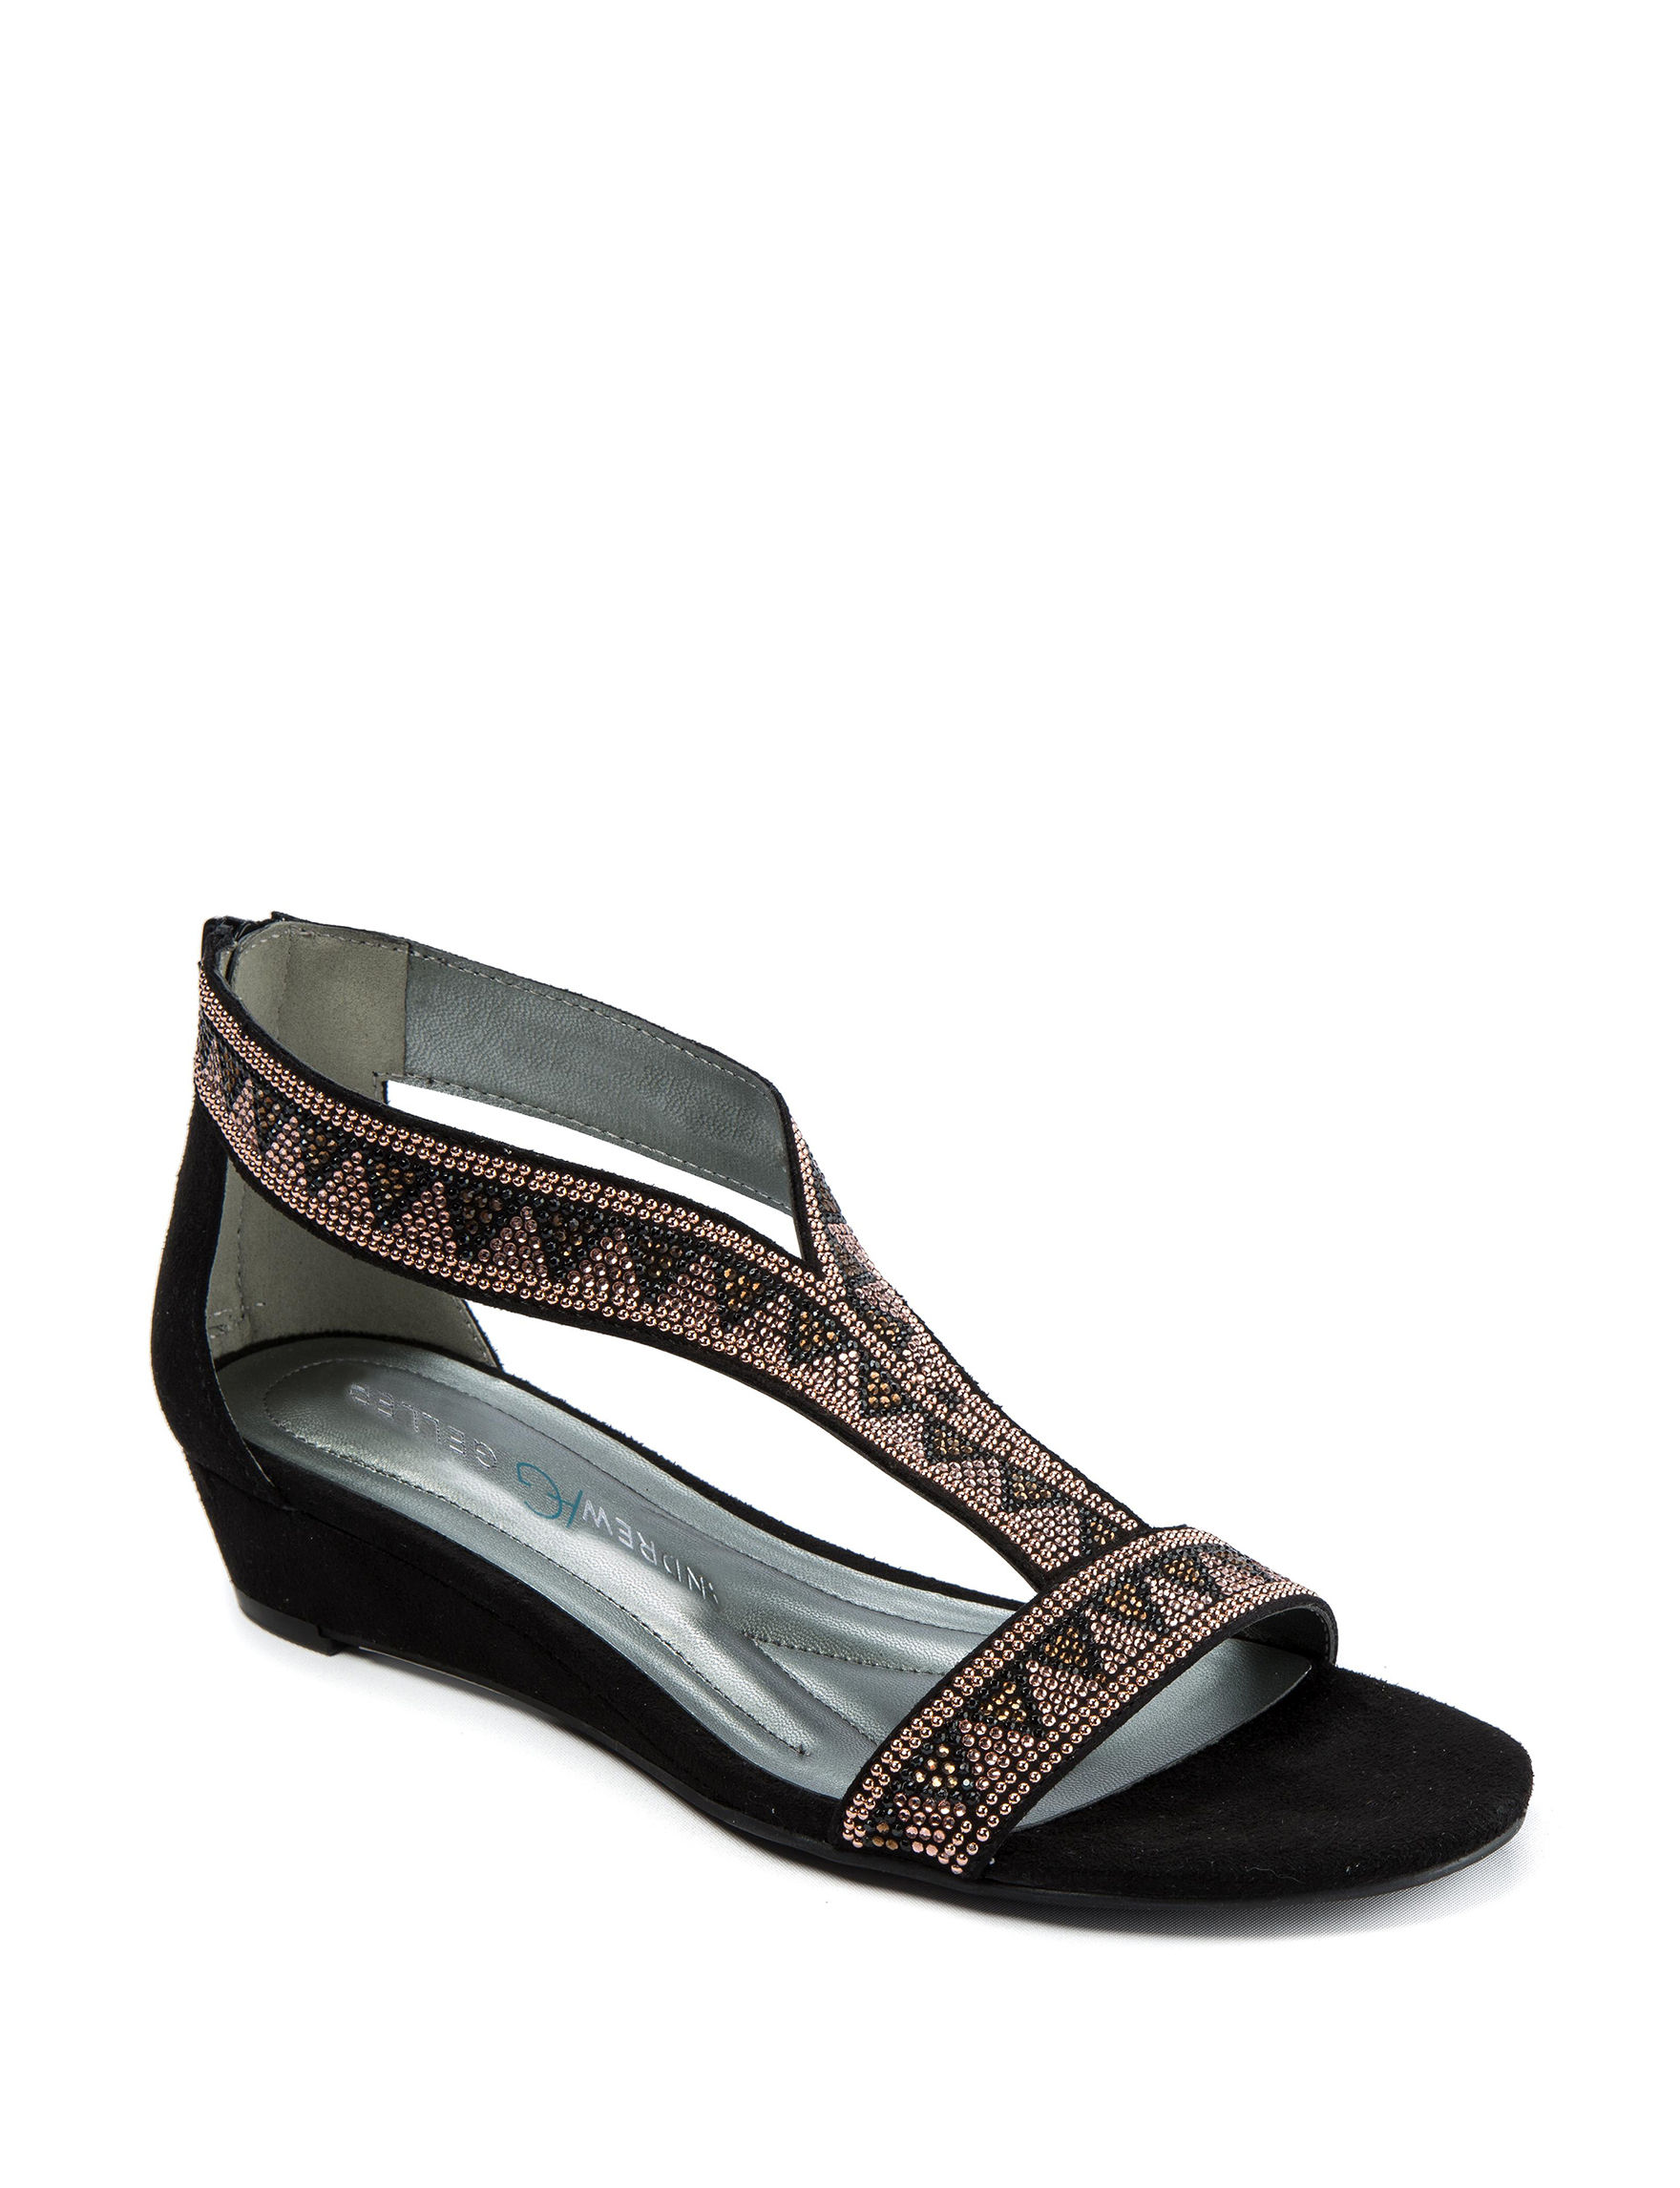 Andrew Geller Black Wedge Sandals Comfort